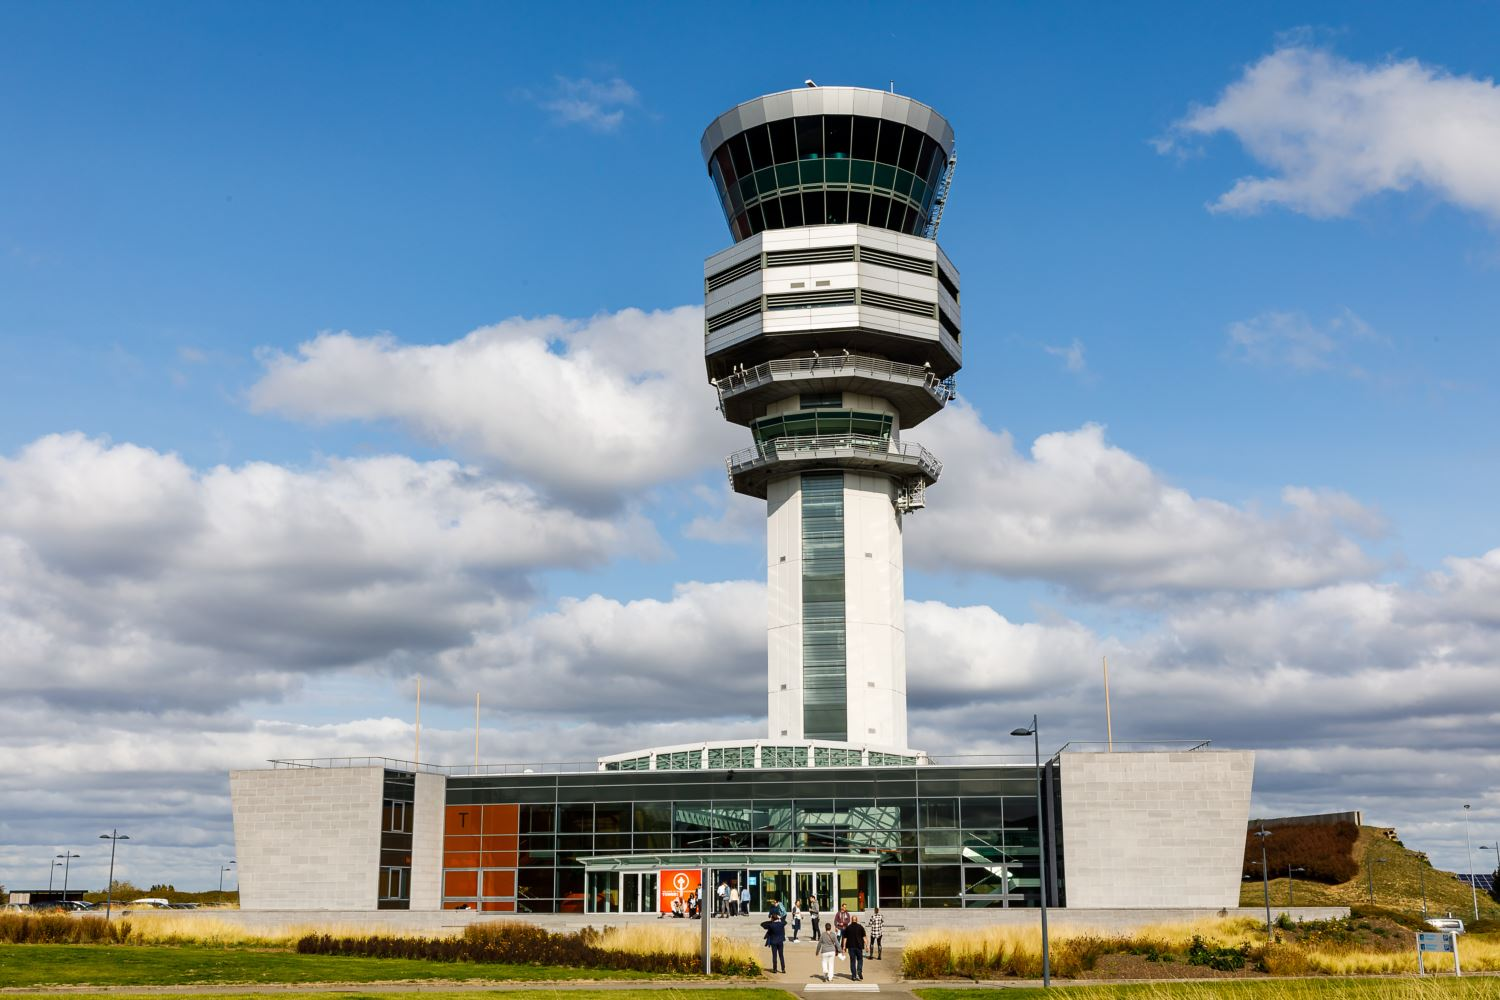 The Brussels Airport control tower